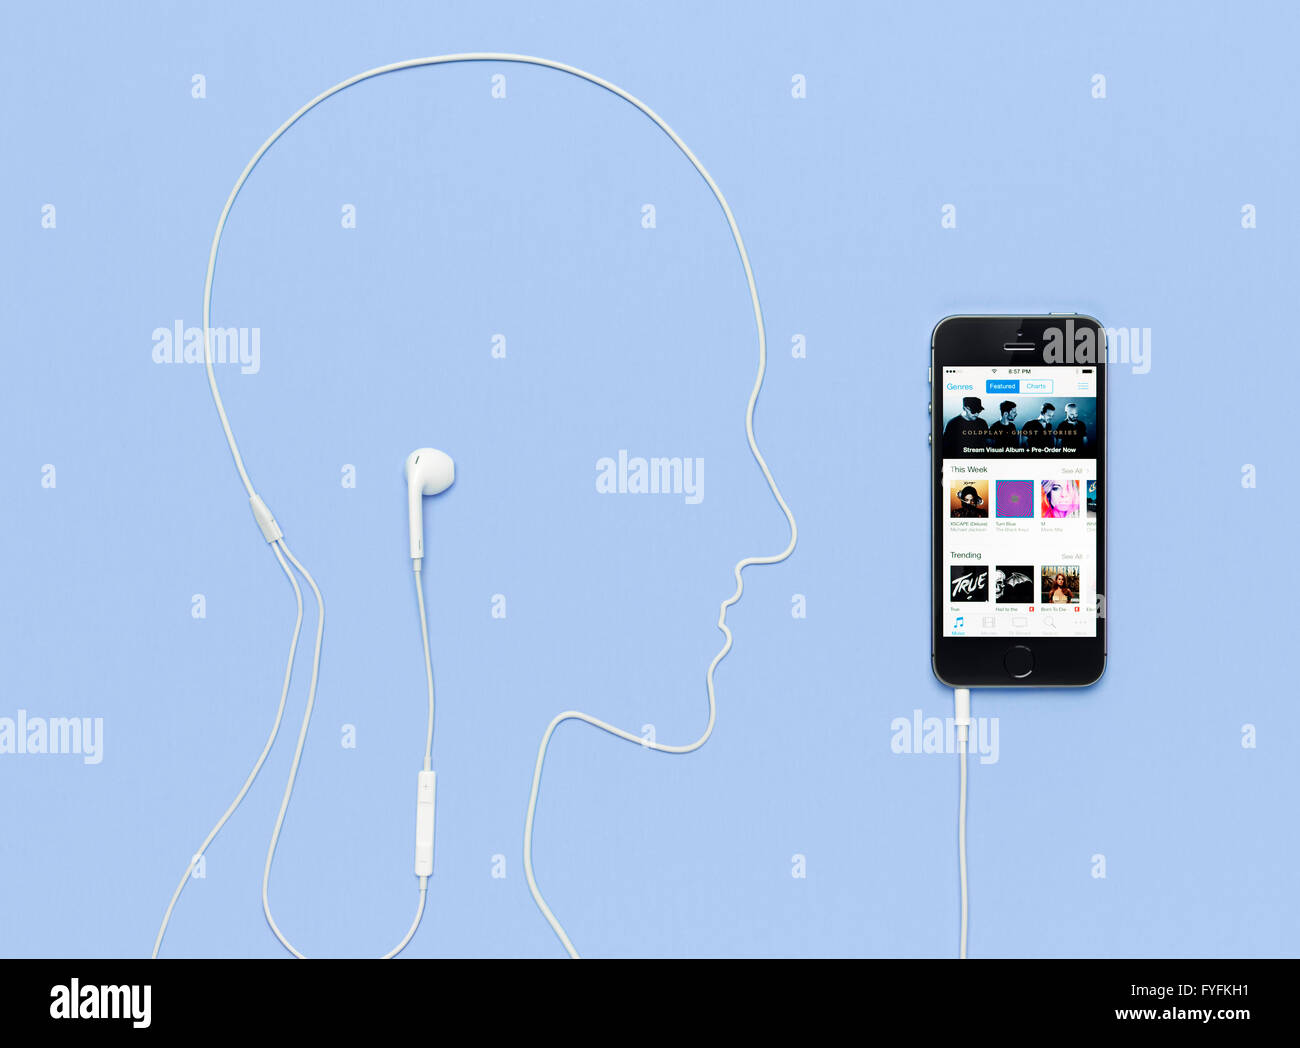 Headphone cable laid out in the shape of a man's head plugged into an iPhone 5s displaying the iTunes music - Stock Image